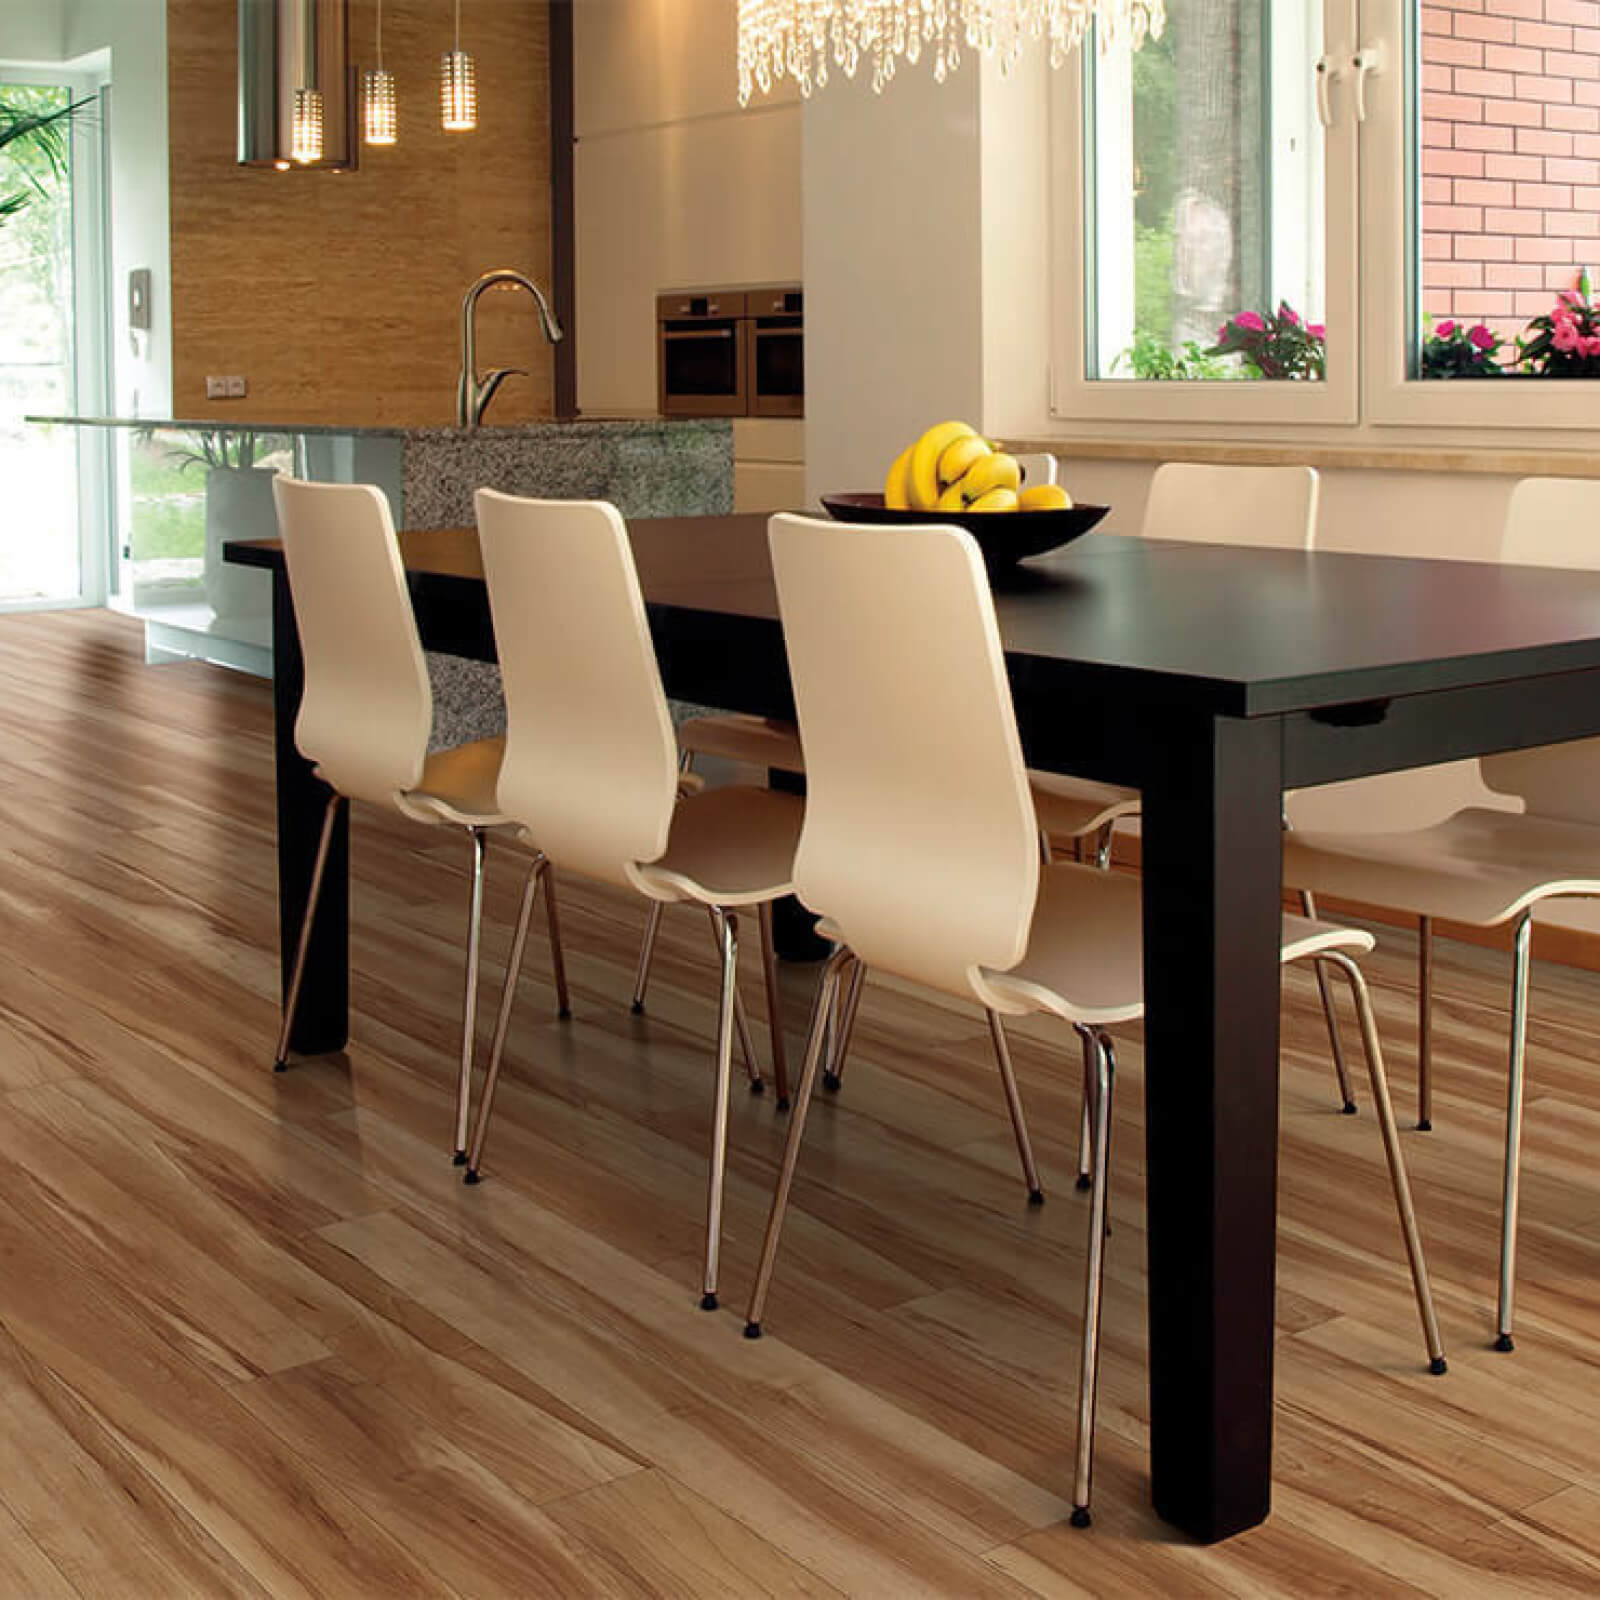 Coretec luxury vinyl flooring